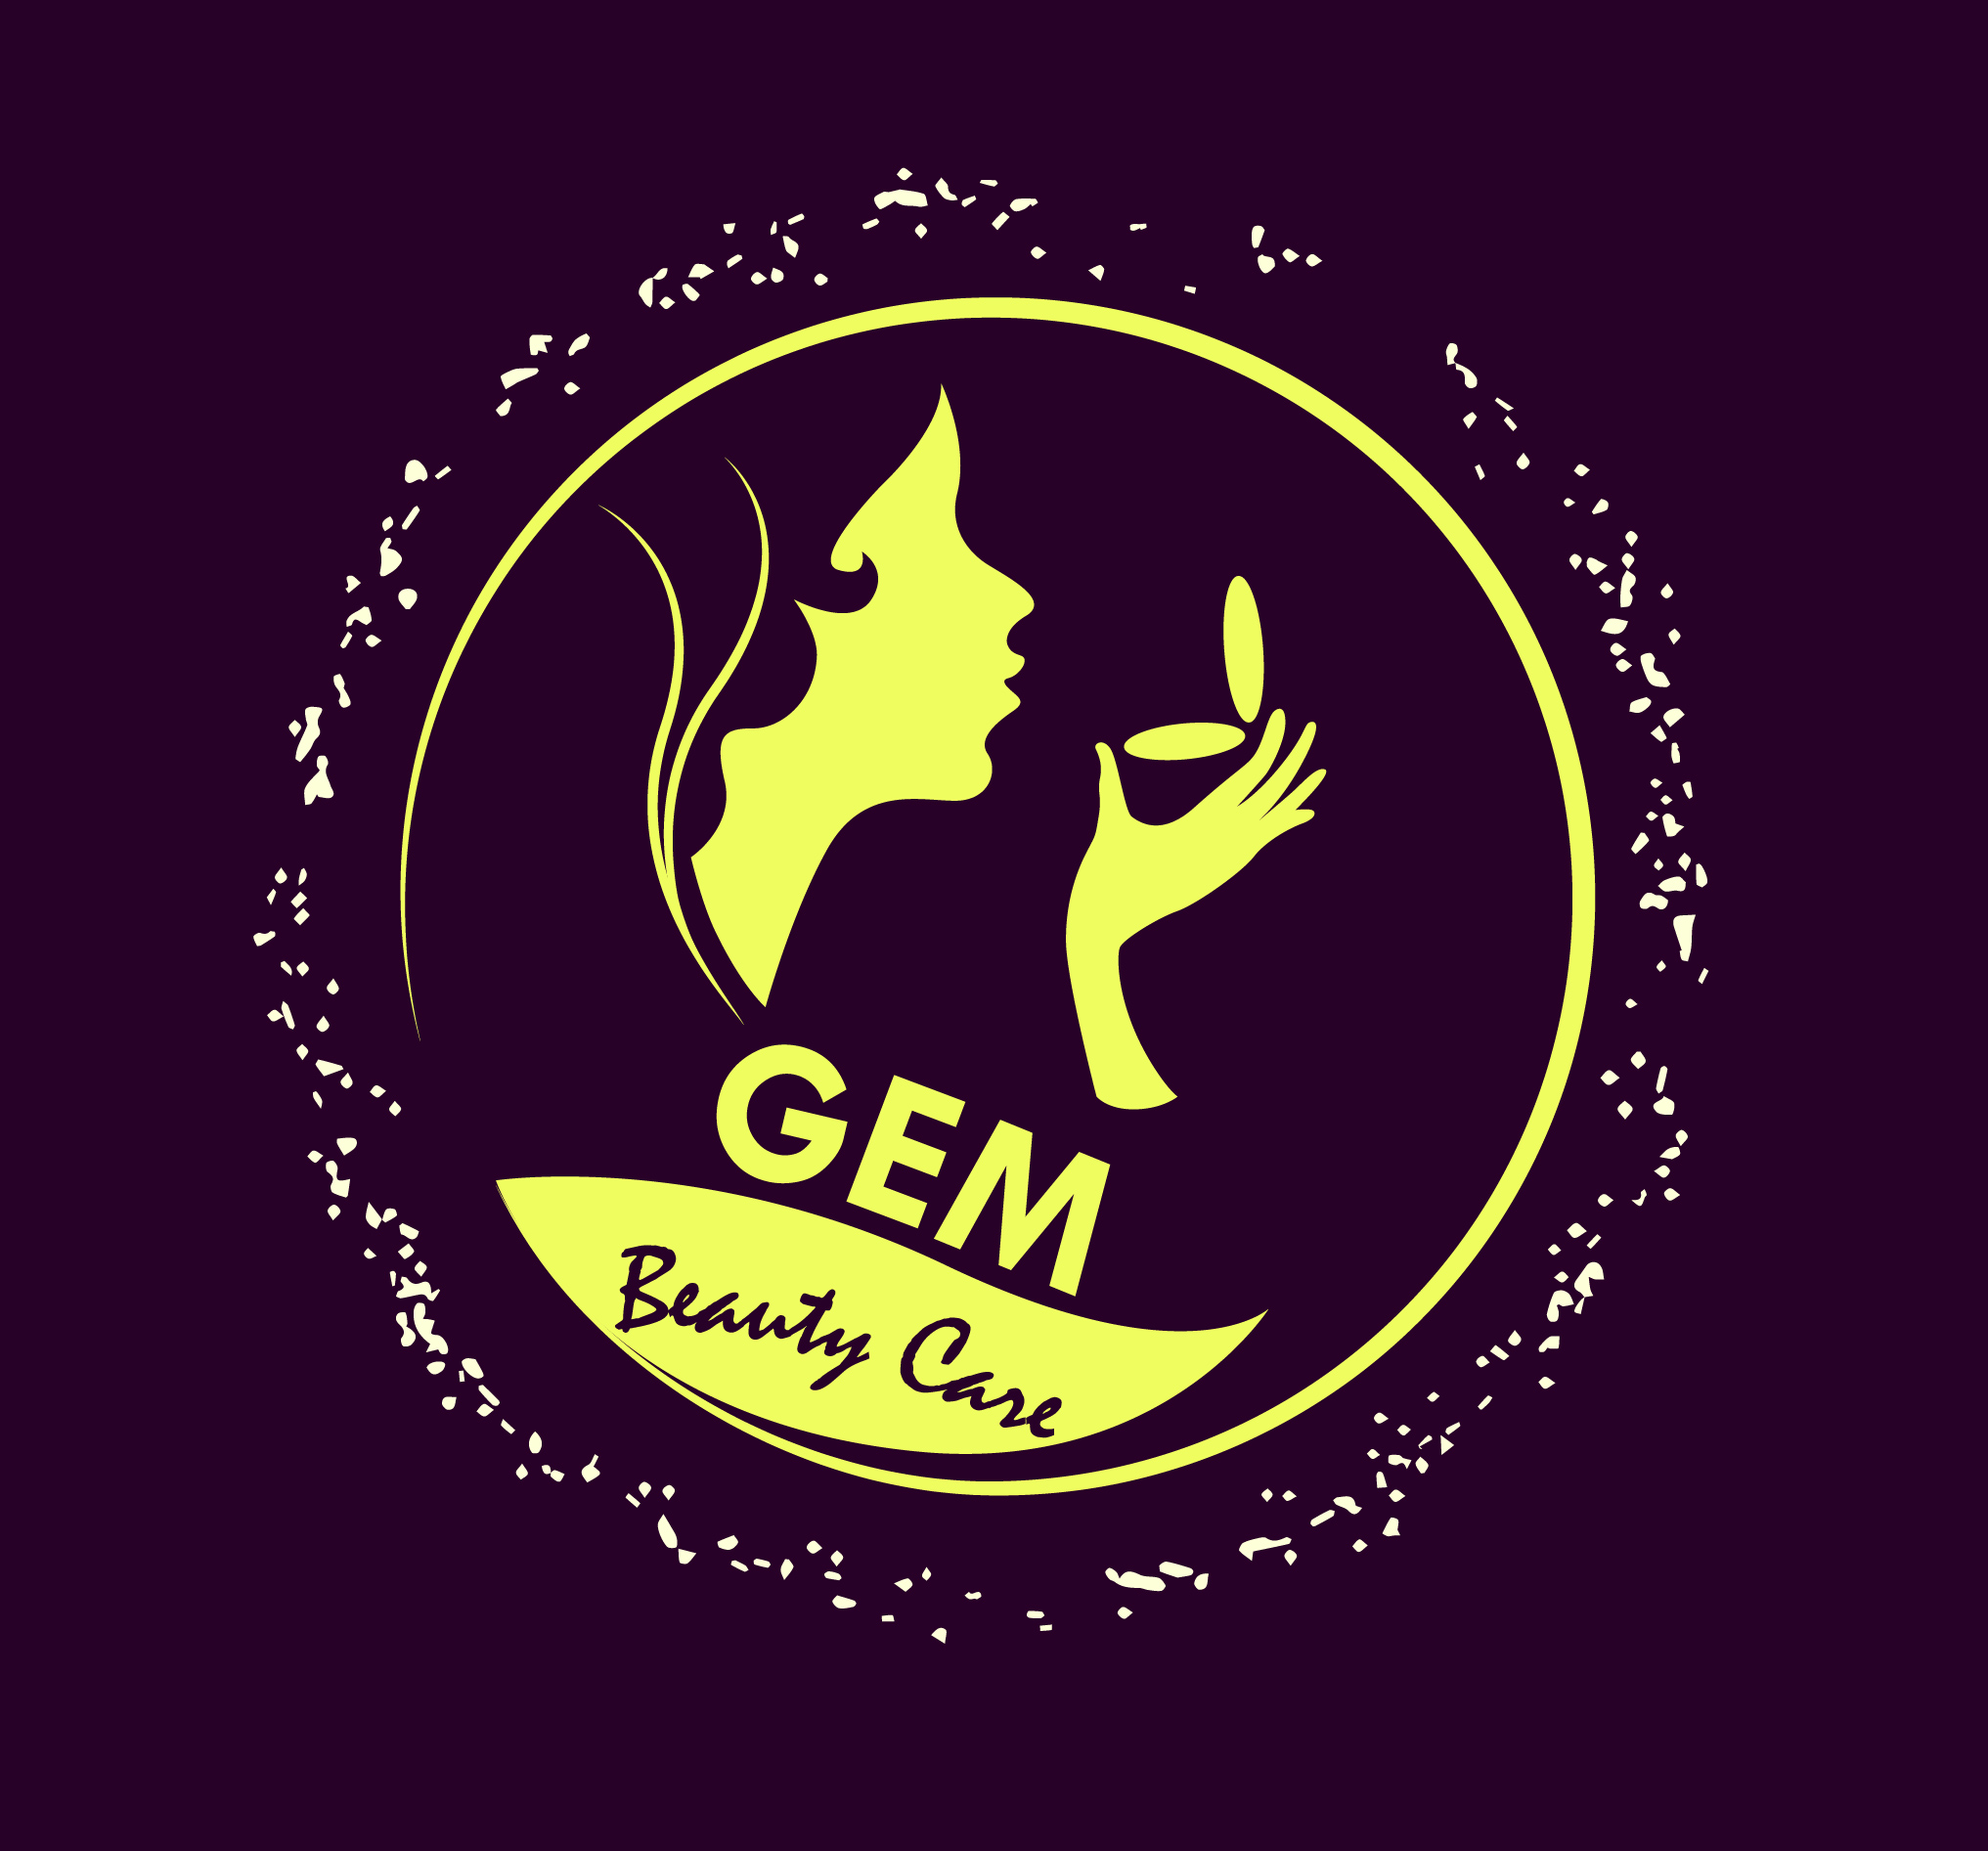 Gem beauty care and accessories